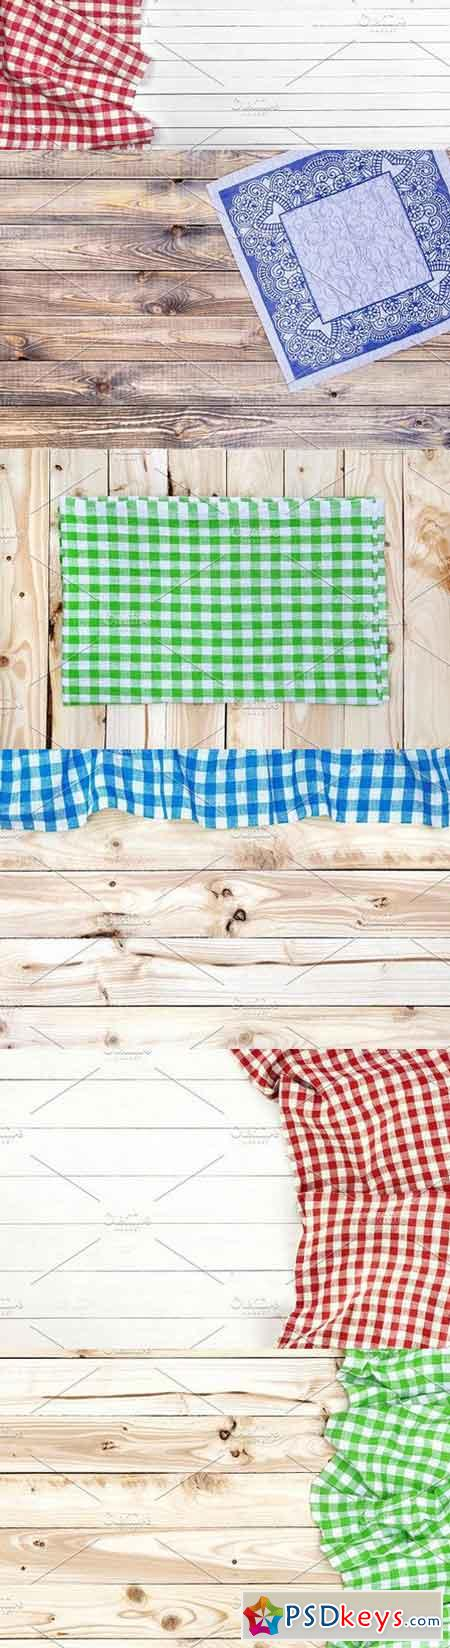 Tablecloth on wooden table 1322986